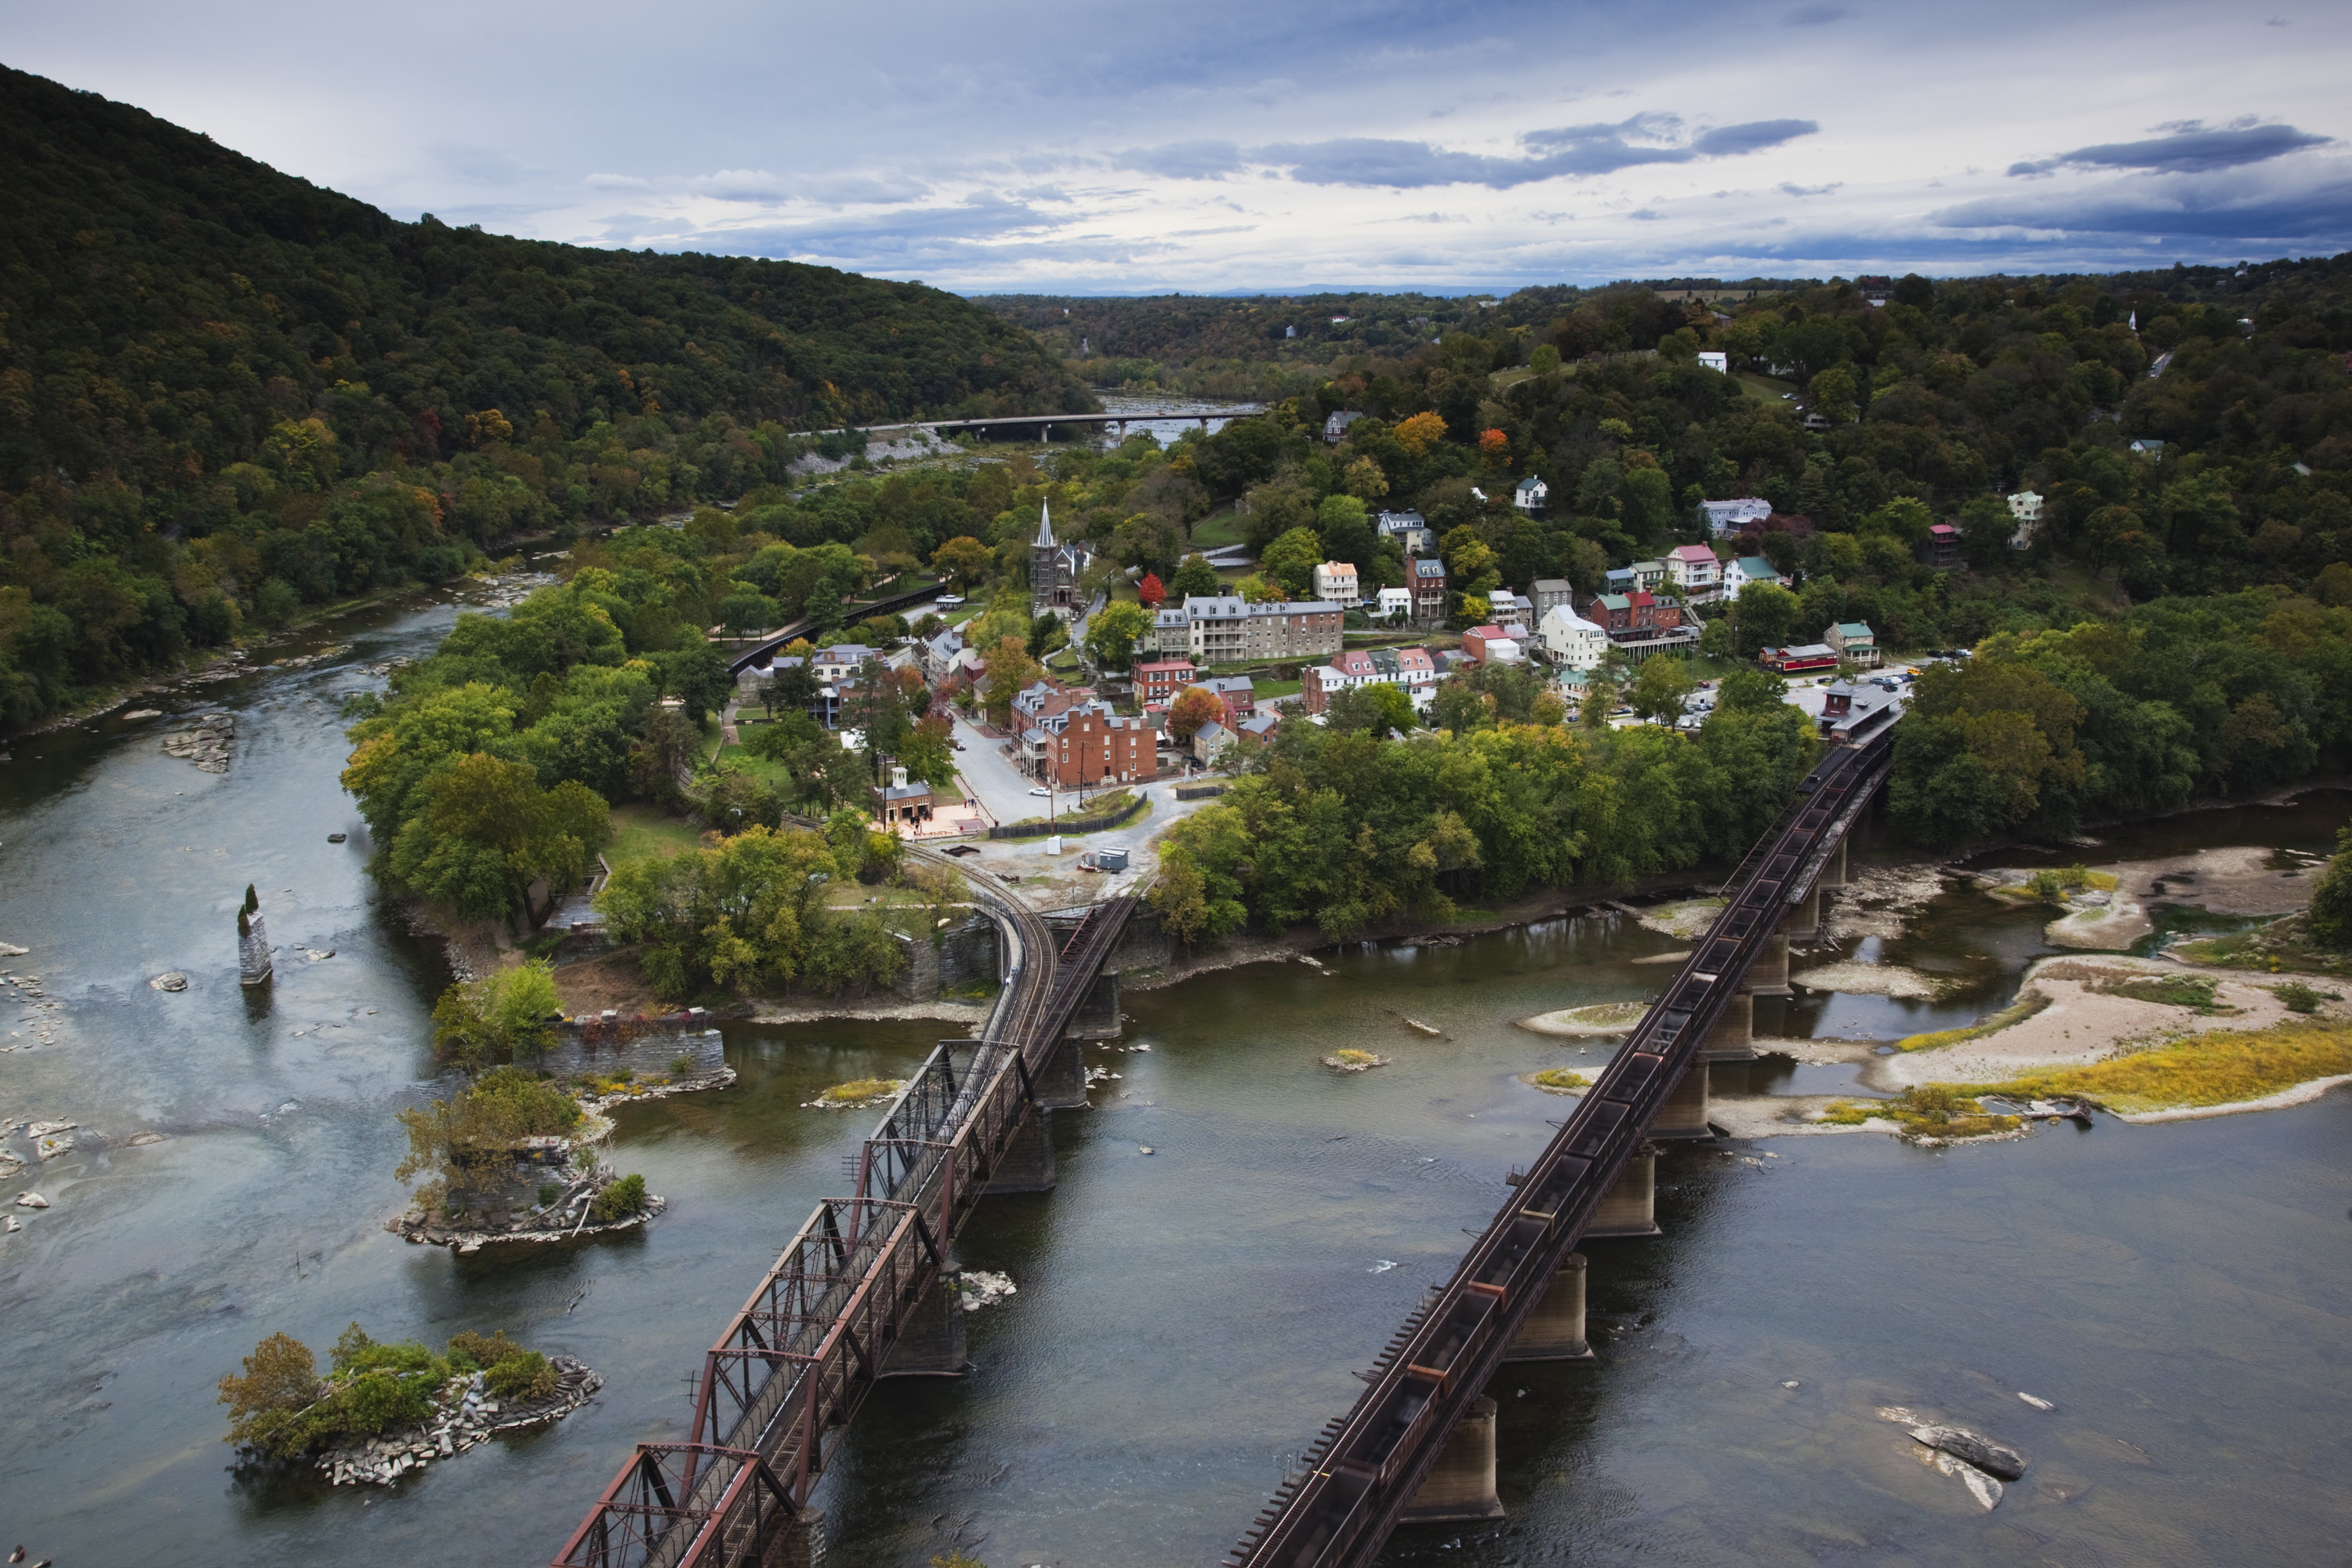 An aerial shot of Harpers Ferry that shows off the two bridges, charming buildings, and the surrounding green areas.